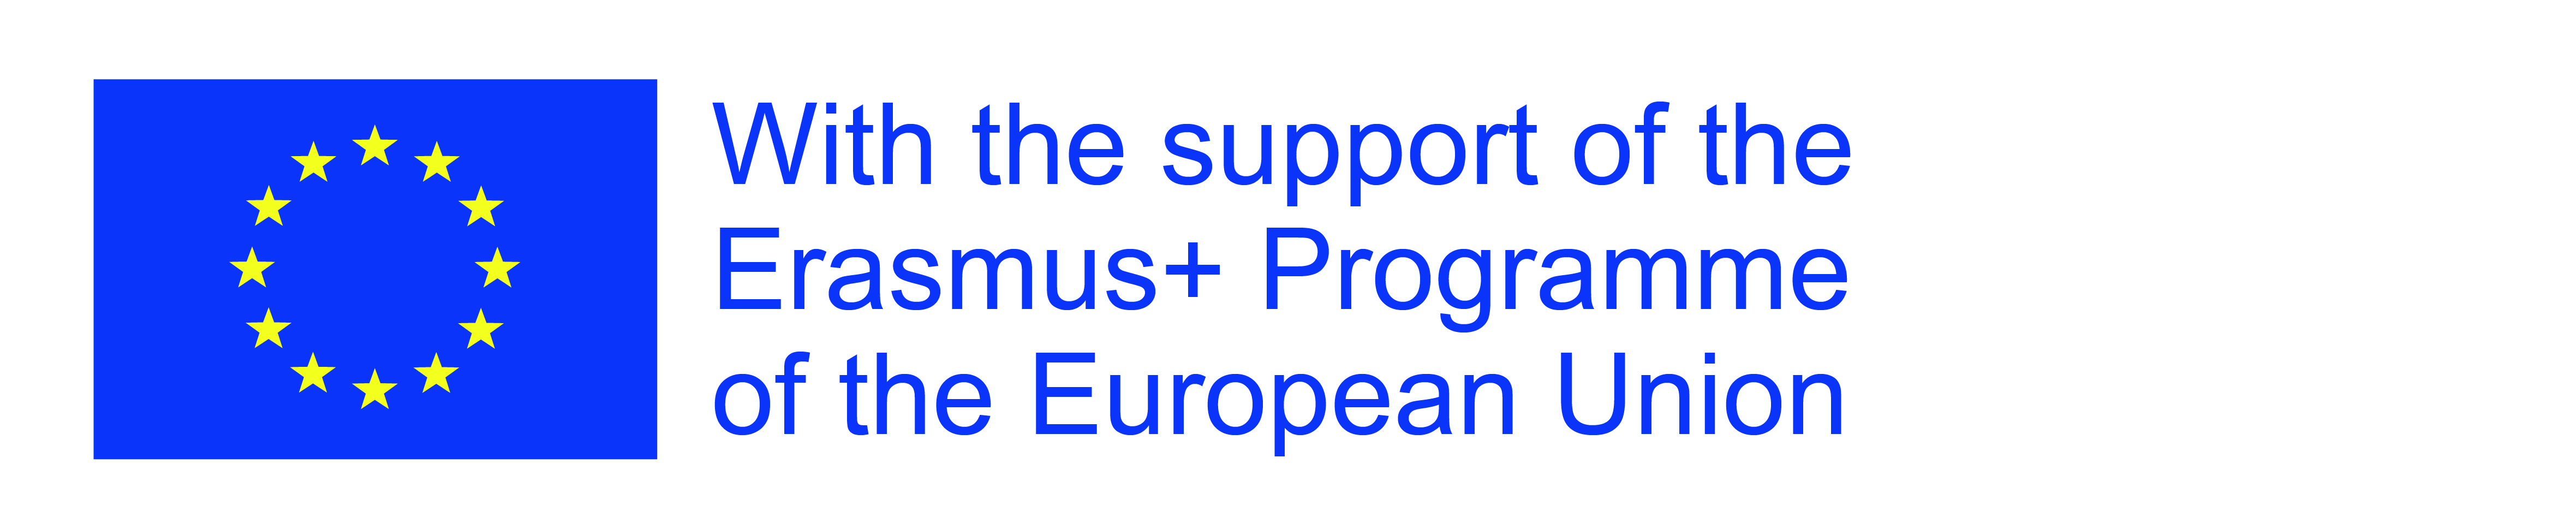 Erasmus and Programme of the European Union Support